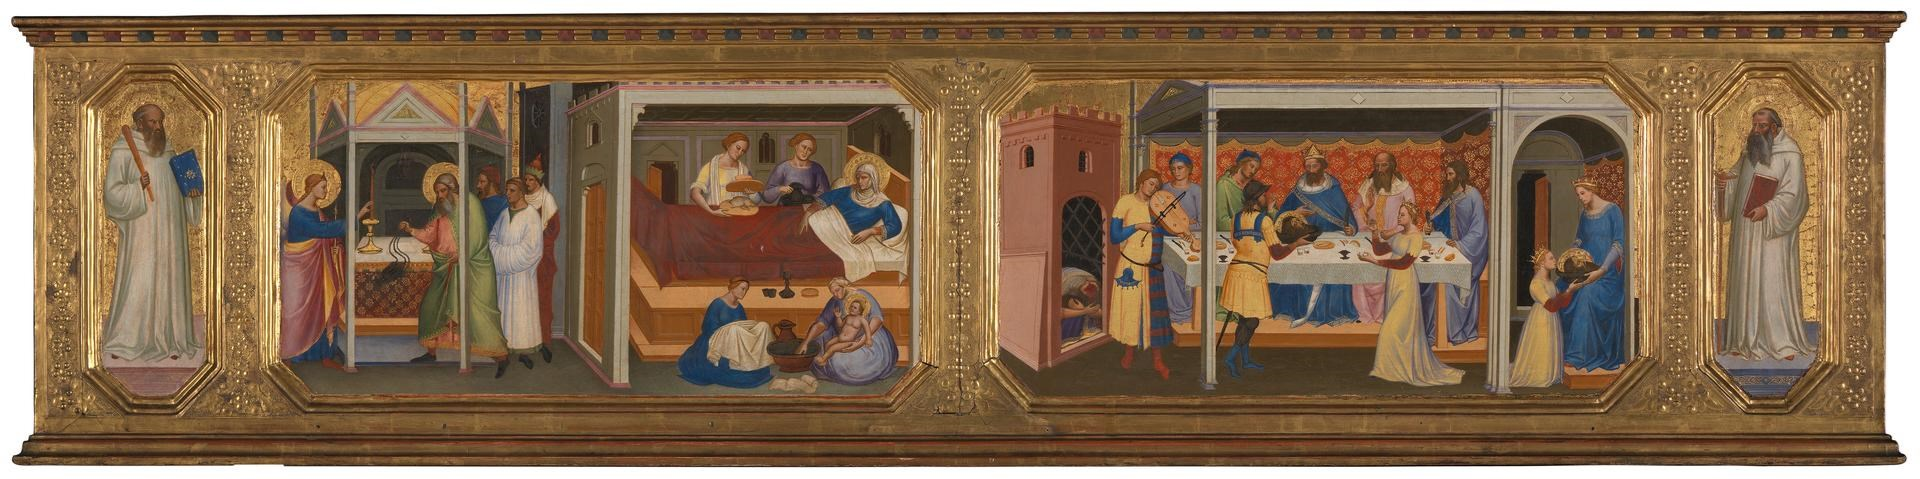 Scenes from the Life of Saint John the Baptist by Niccolò di Pietro Gerini